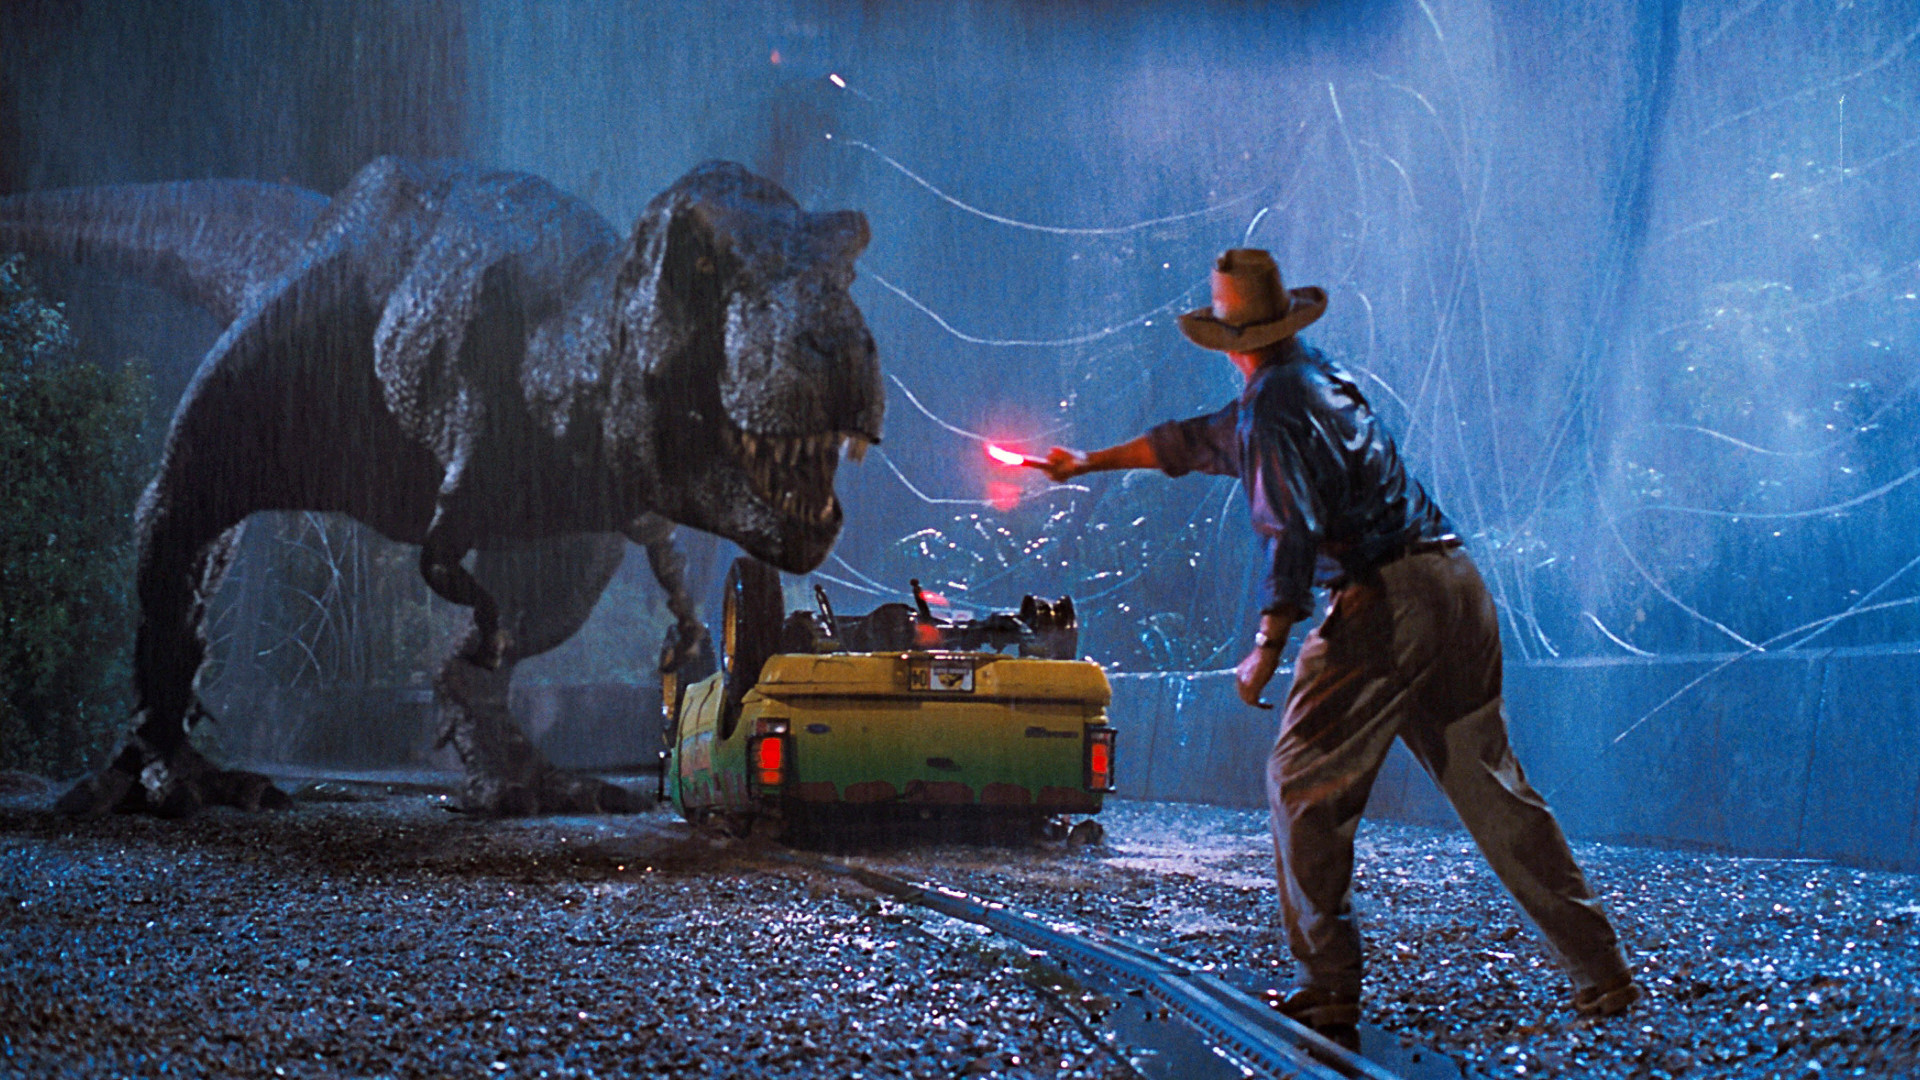 Test your dino knowledge with our jurassic park quiz ifc - Dinosaure de jurassic park ...